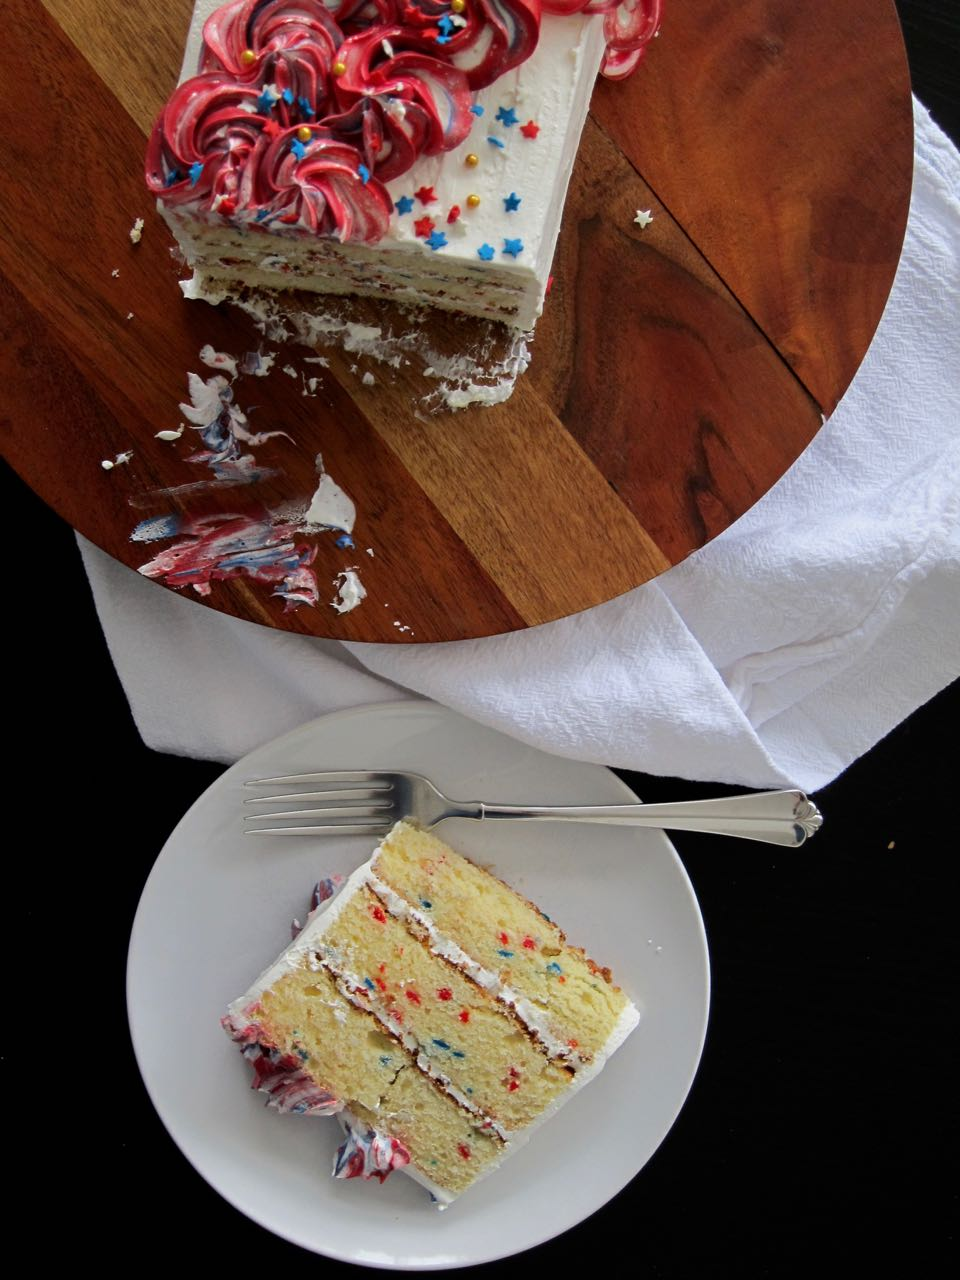 Sliced red white blue funfetti cake